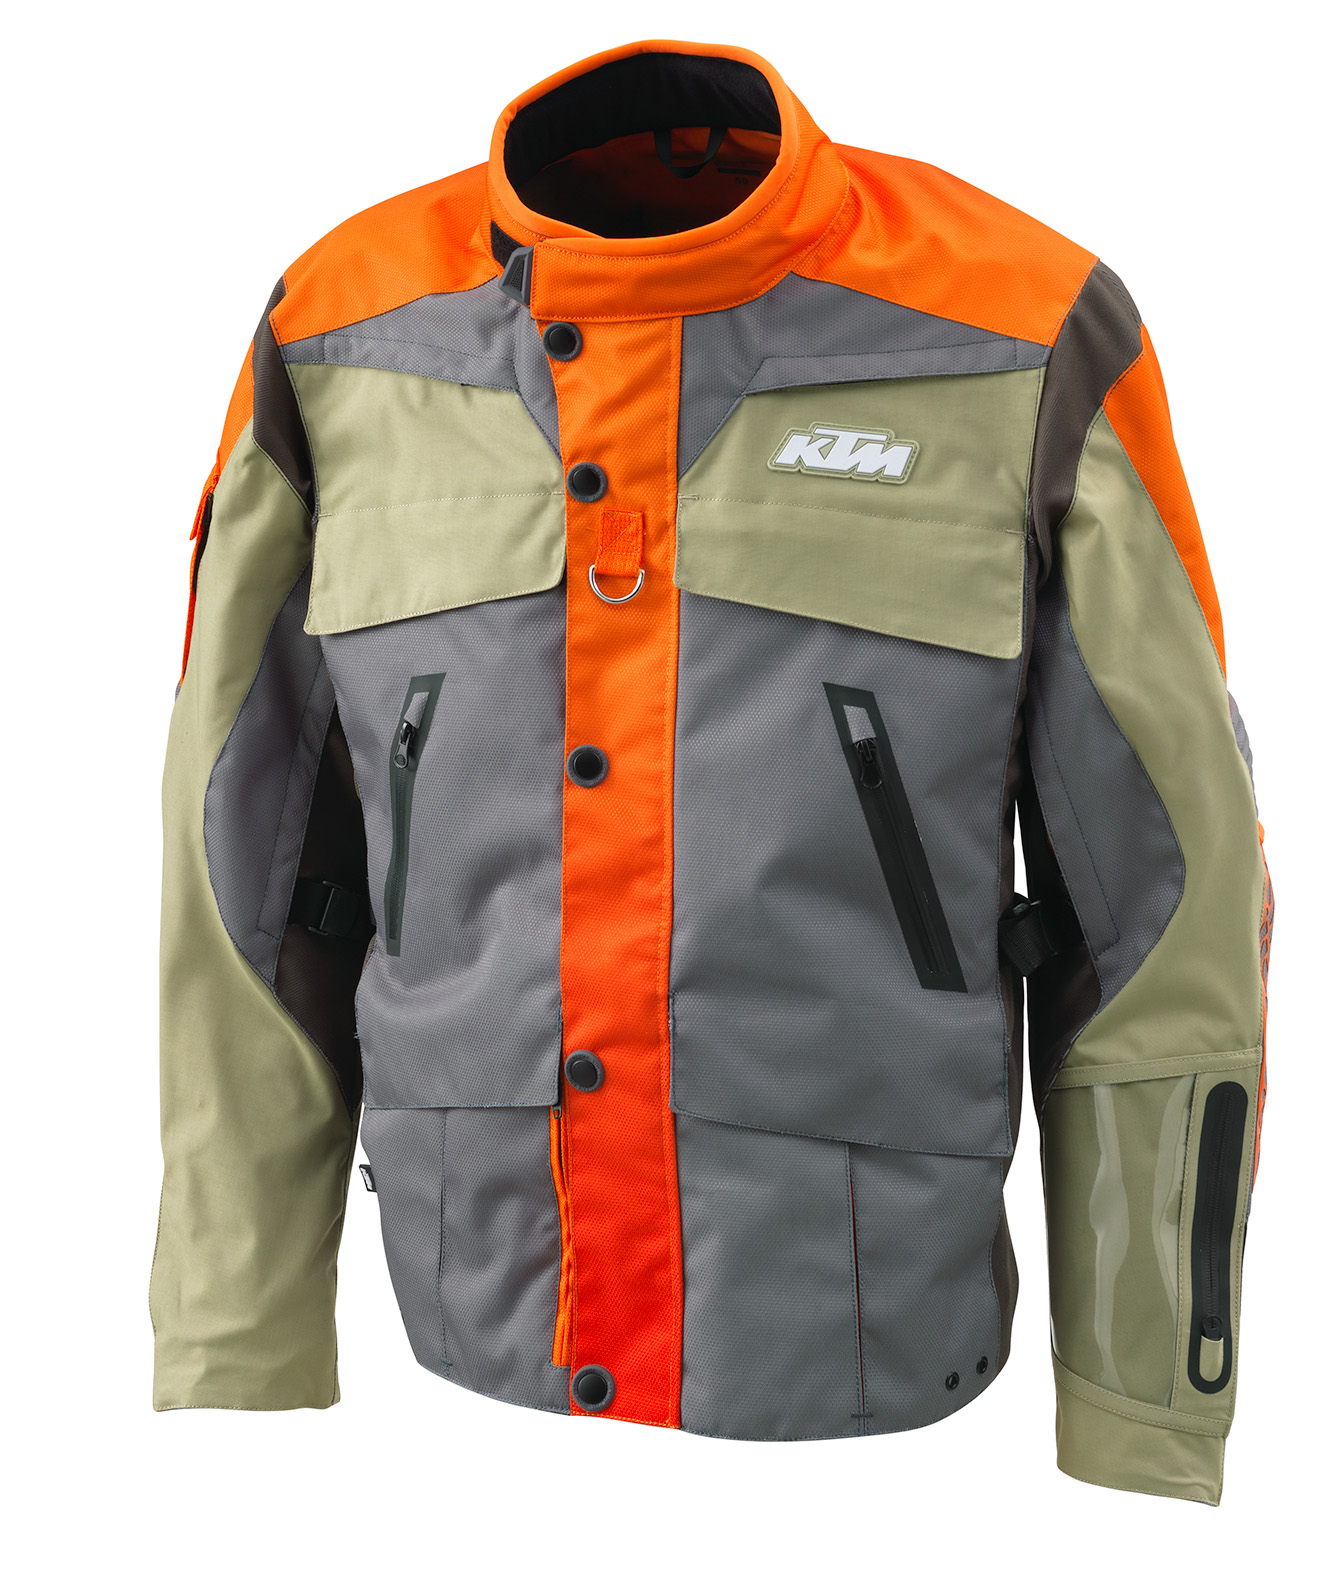 Ktm Pure Adventure Jacket Review